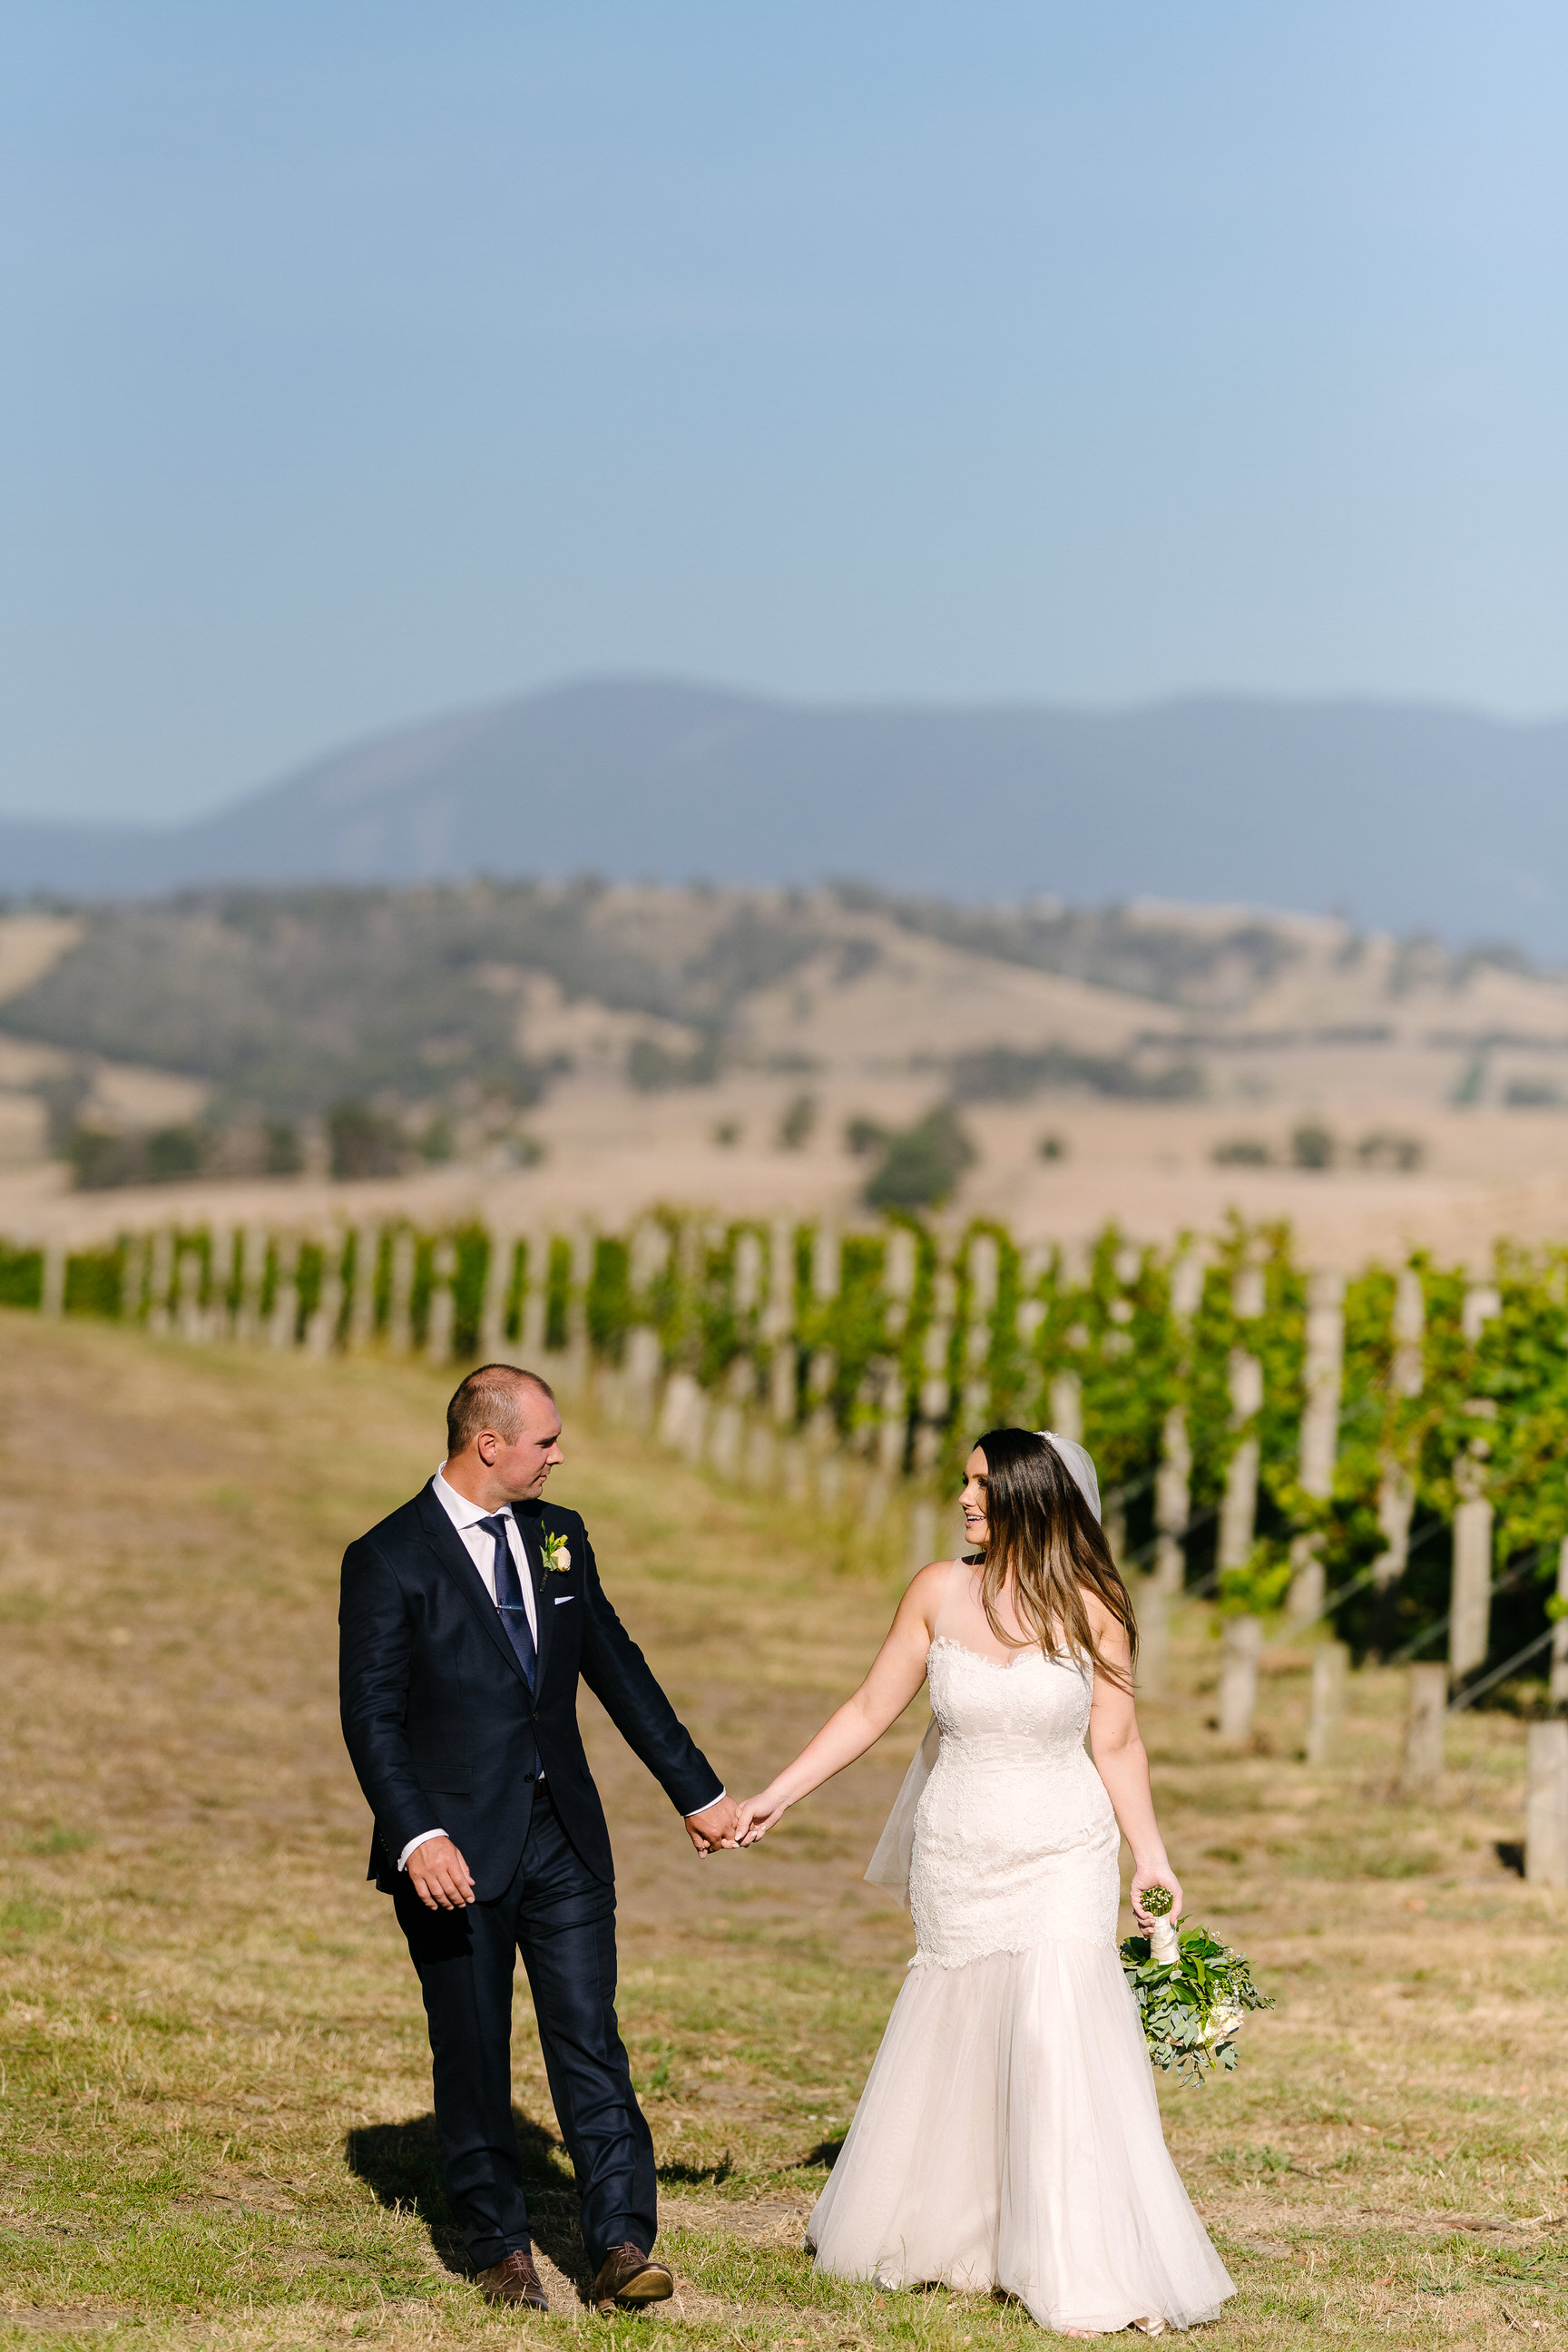 Justin_And_Jim_Photography_Balgownie_Winery_Wedding52.JPG